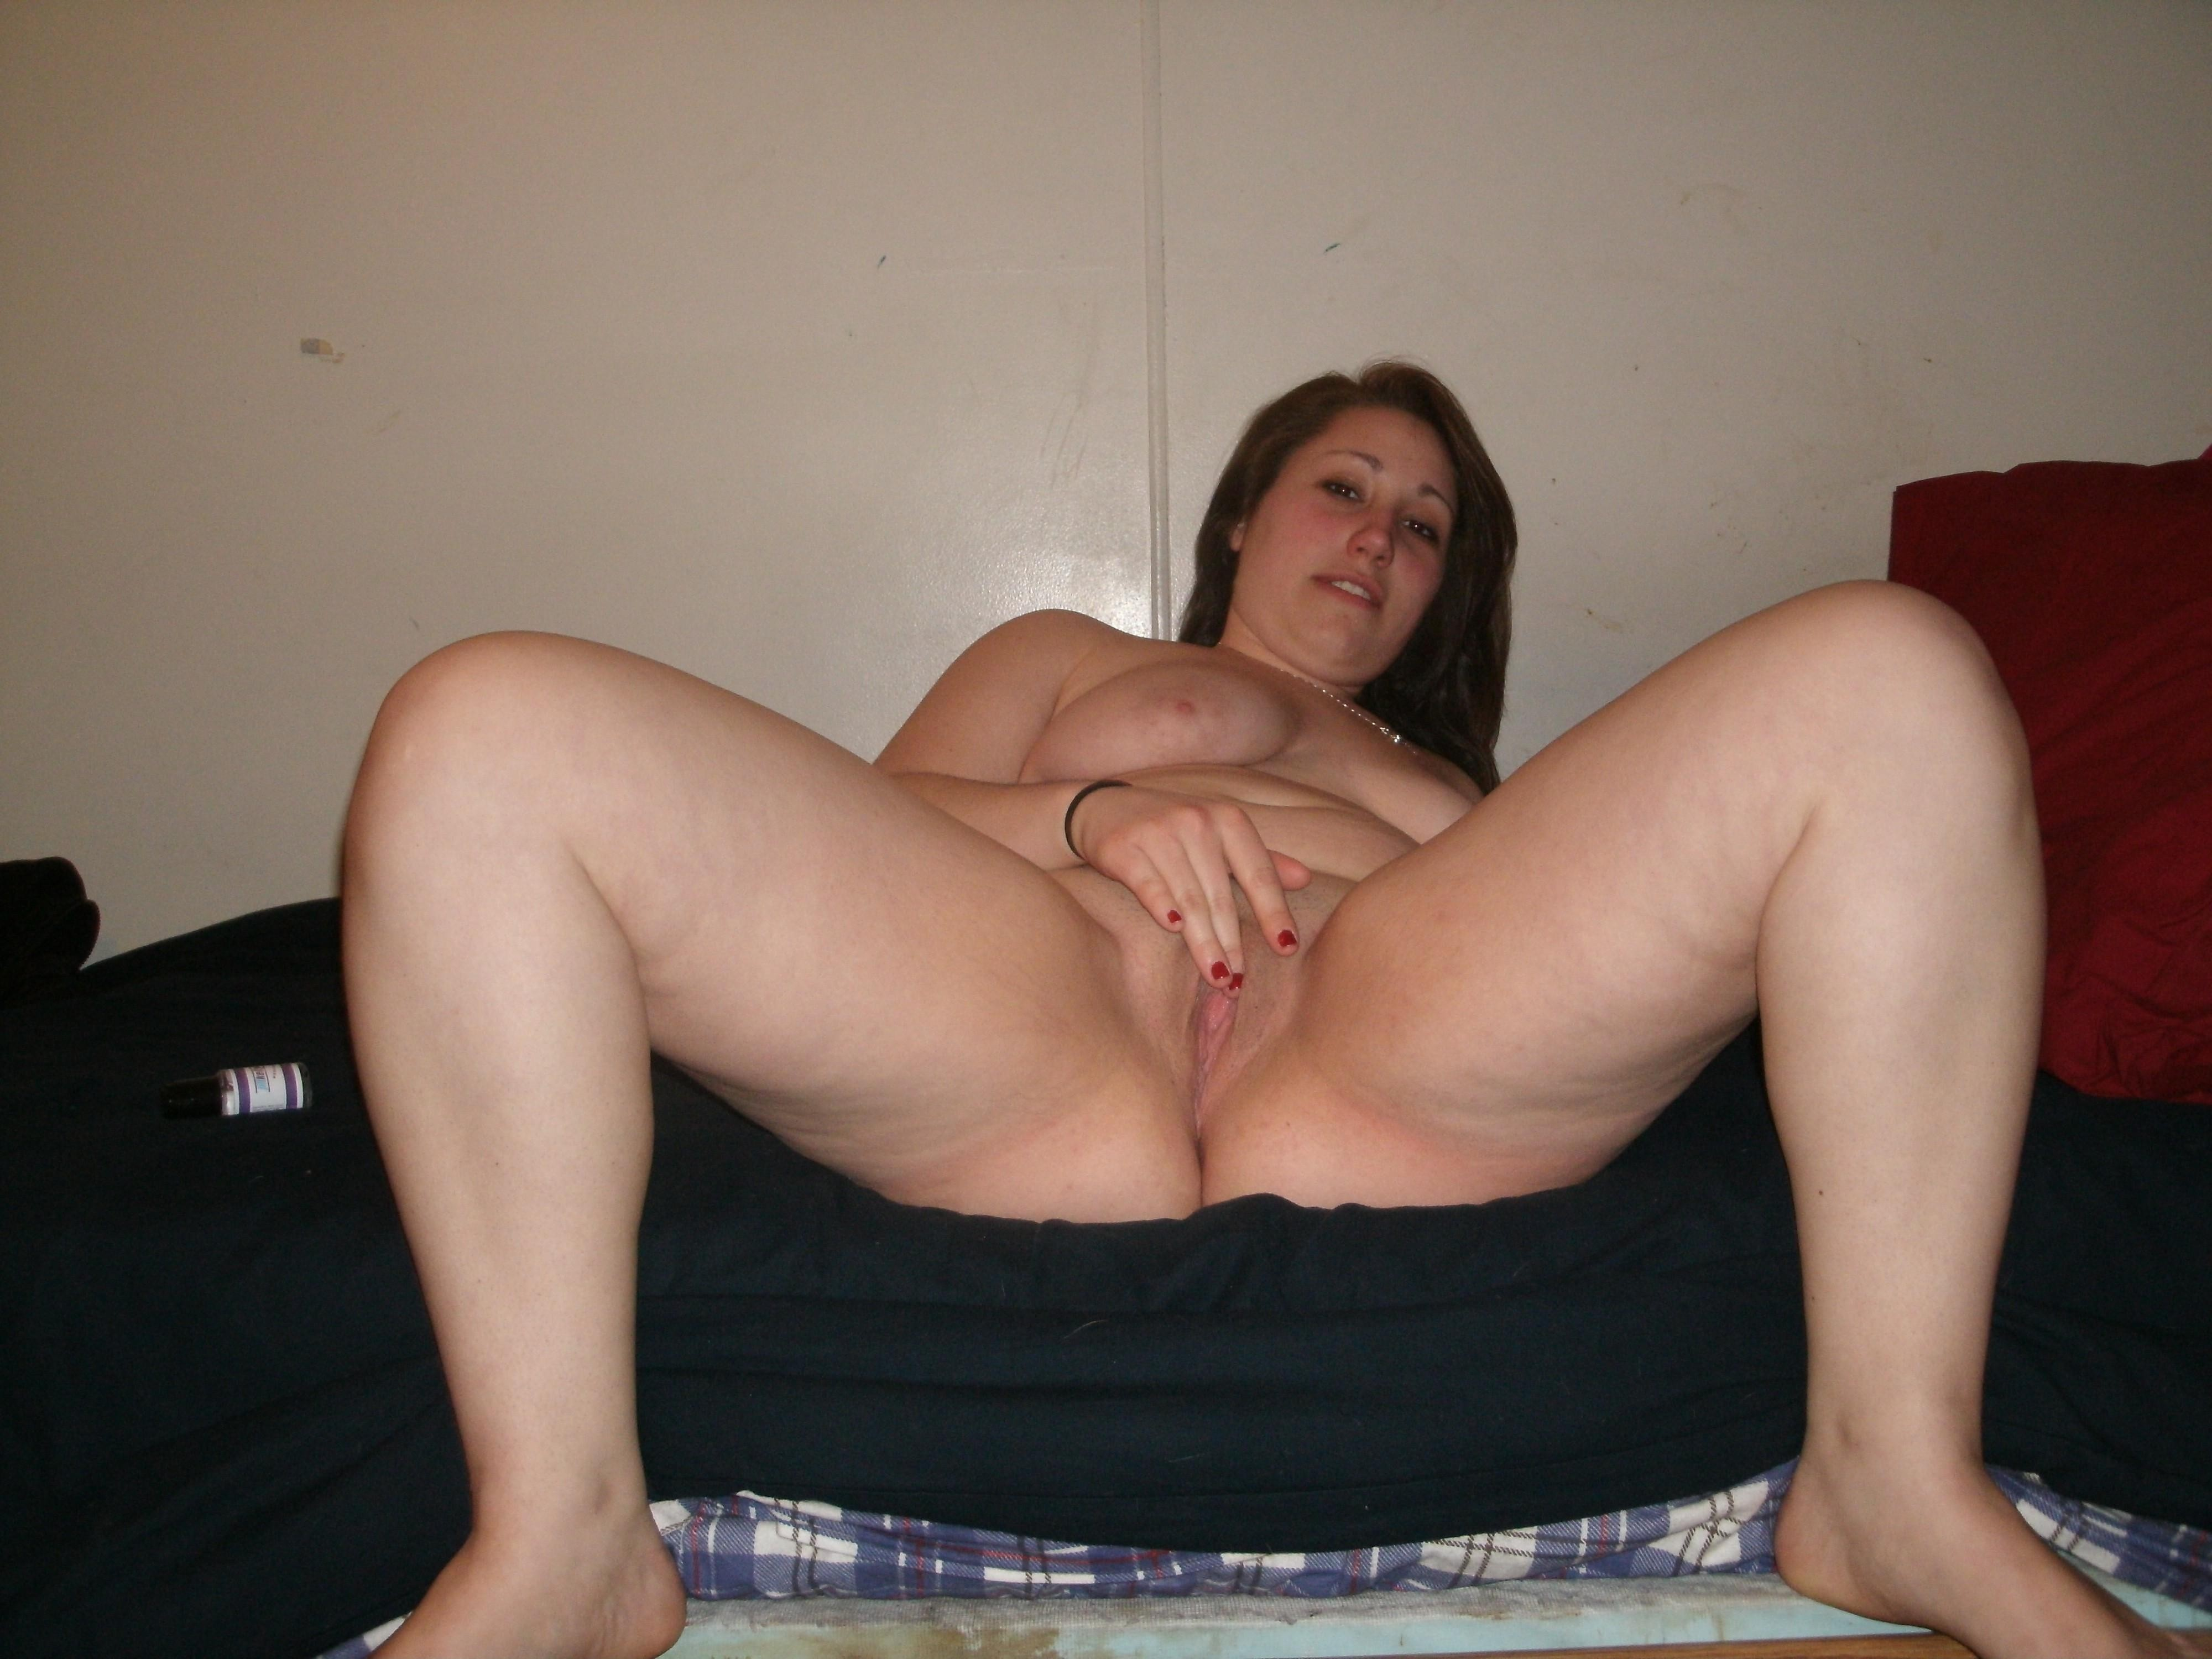 Amateur chubby women nude video — pic 14